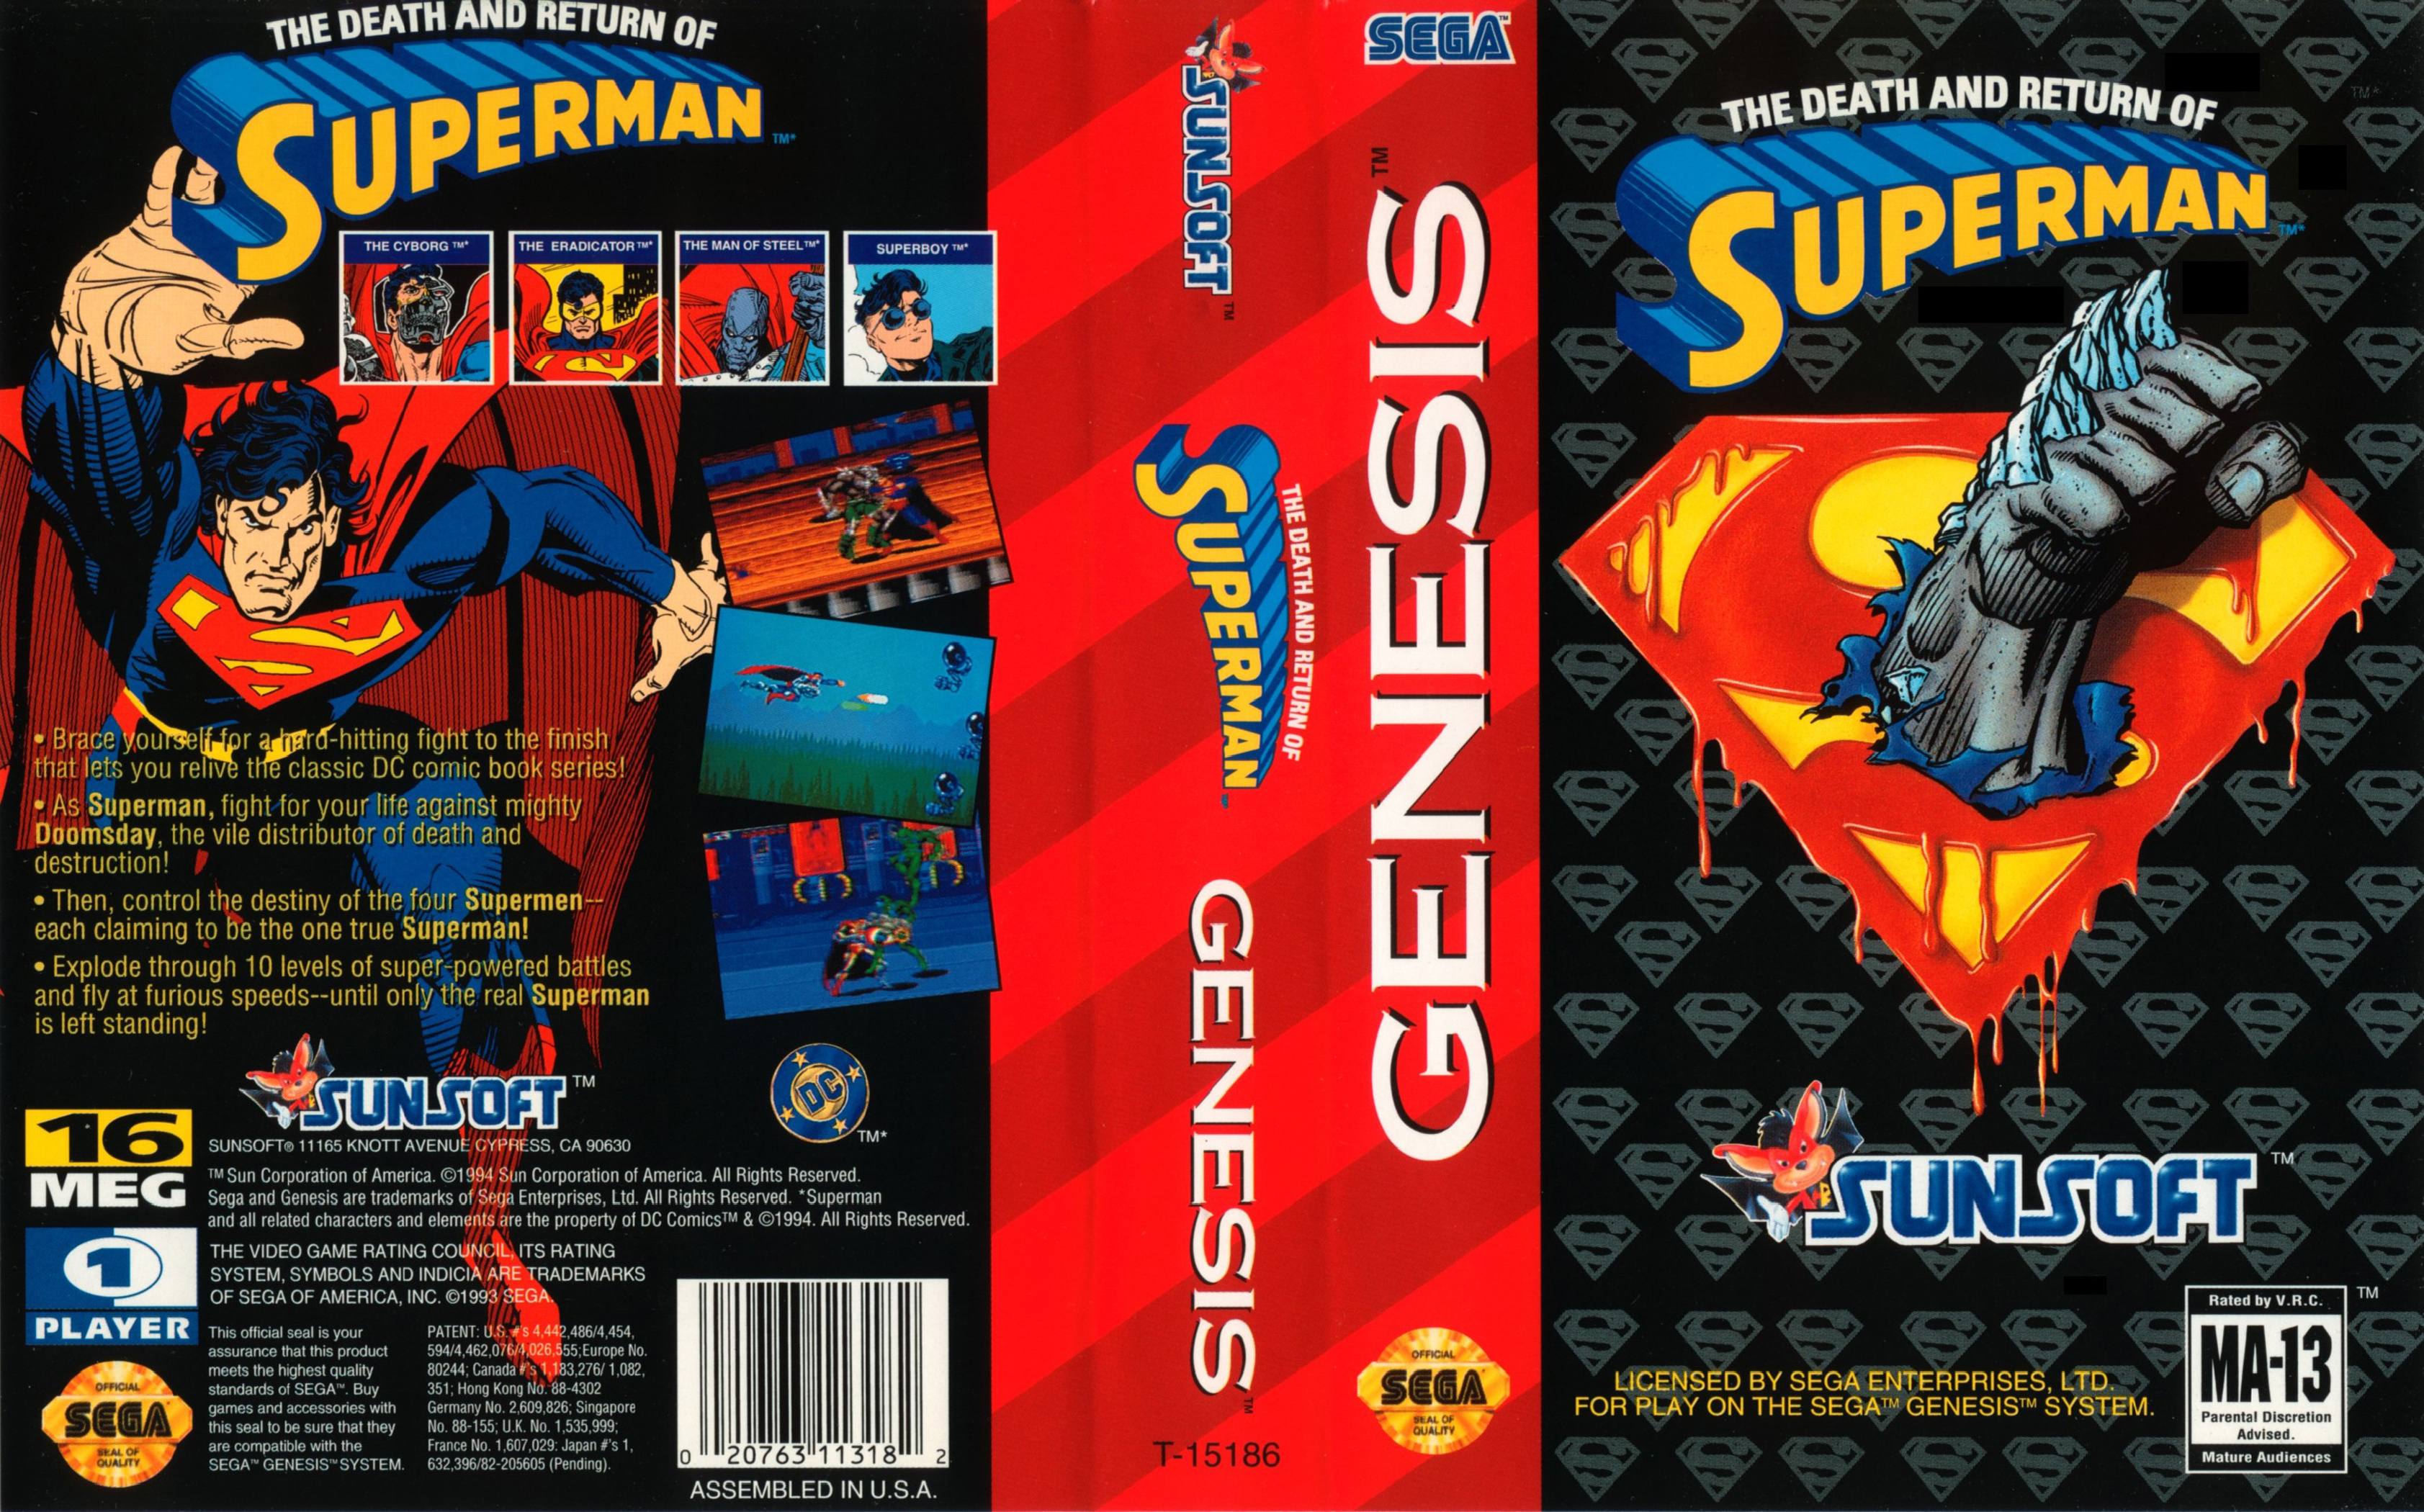 [Image: Death%20and%20Return%20of%20Superman,%20The.jpg]